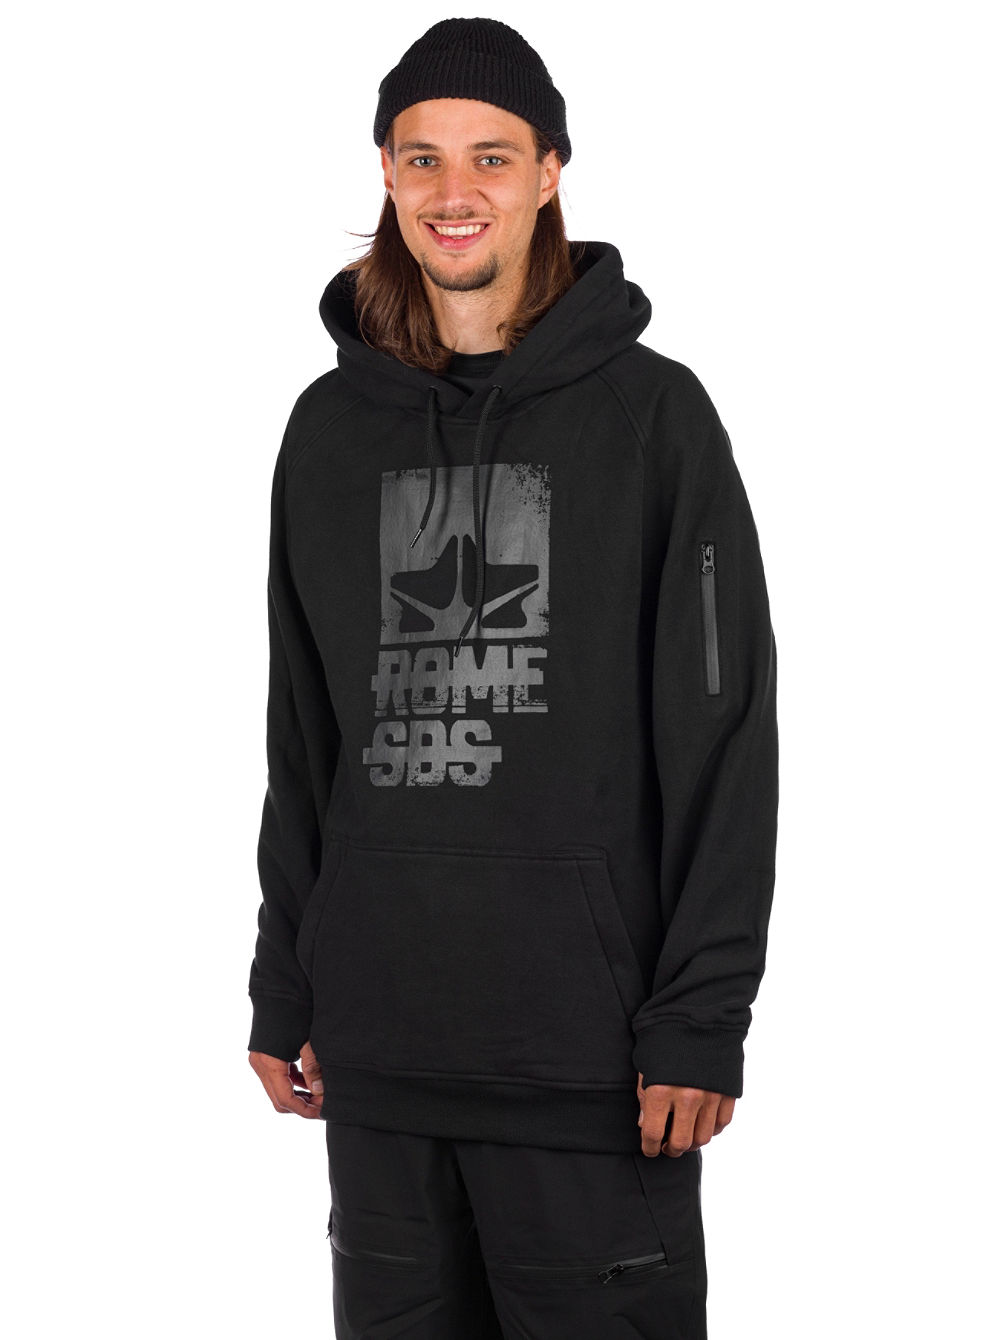 Riding Shred Hoodie